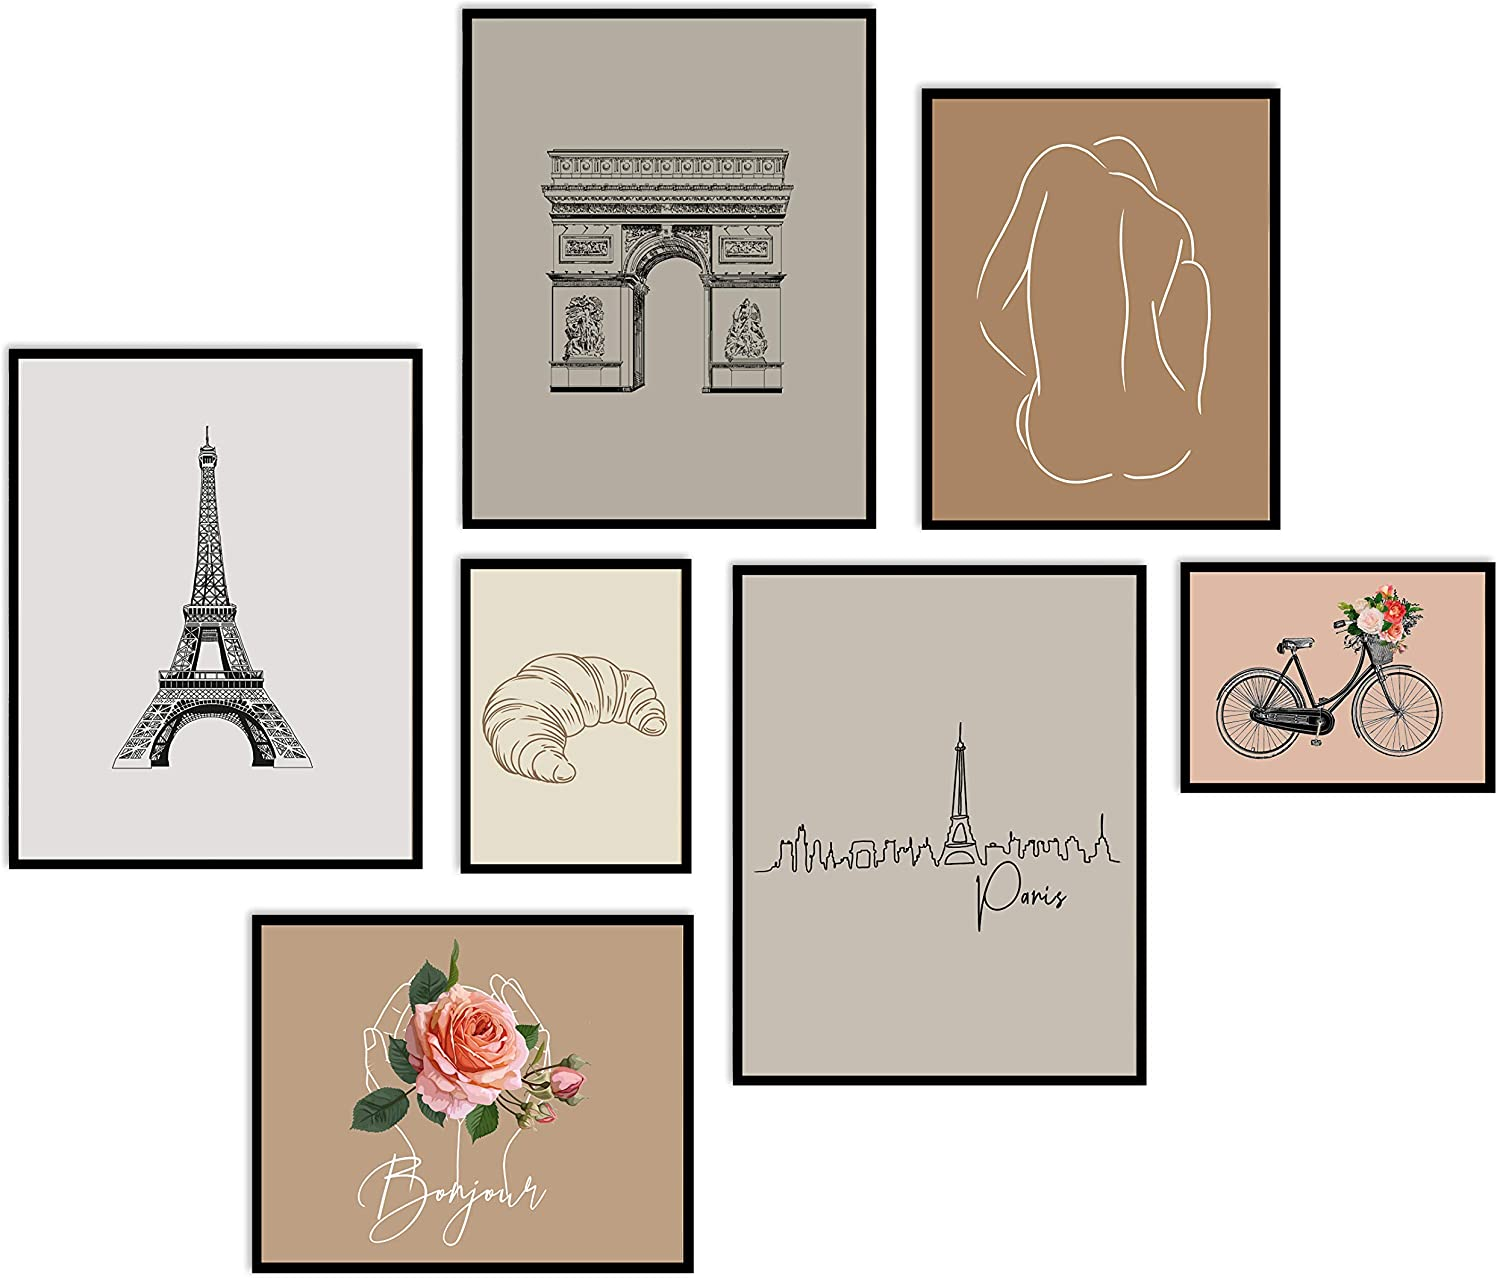 Printsmo Paris Neutral Tones Wall Collage Set of 7, Parisian Abstract Line Drawing Art Prints, Modern Abstract and Minimalist Art Prints for Home Decor, Boho Style Wall Art Poster Set, Unframed